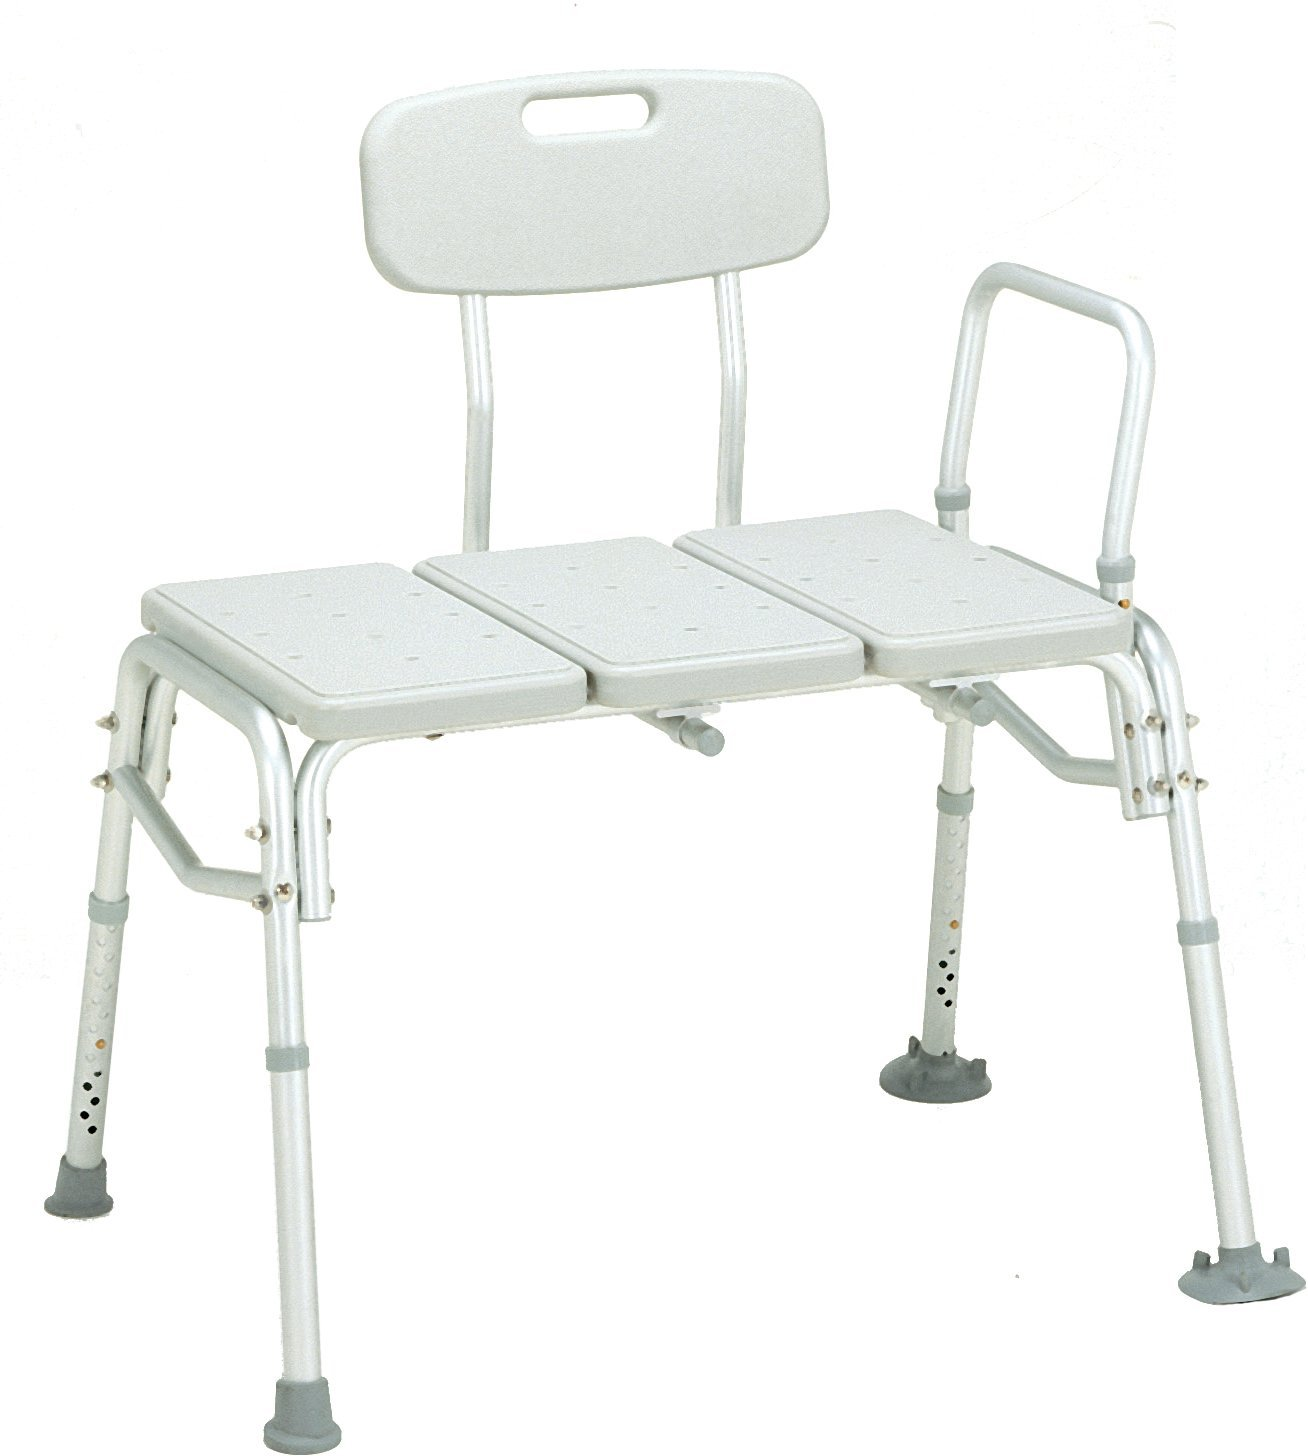 Bariatric Transfer Bench, 500lb Weight Capacity - US MED REHAB